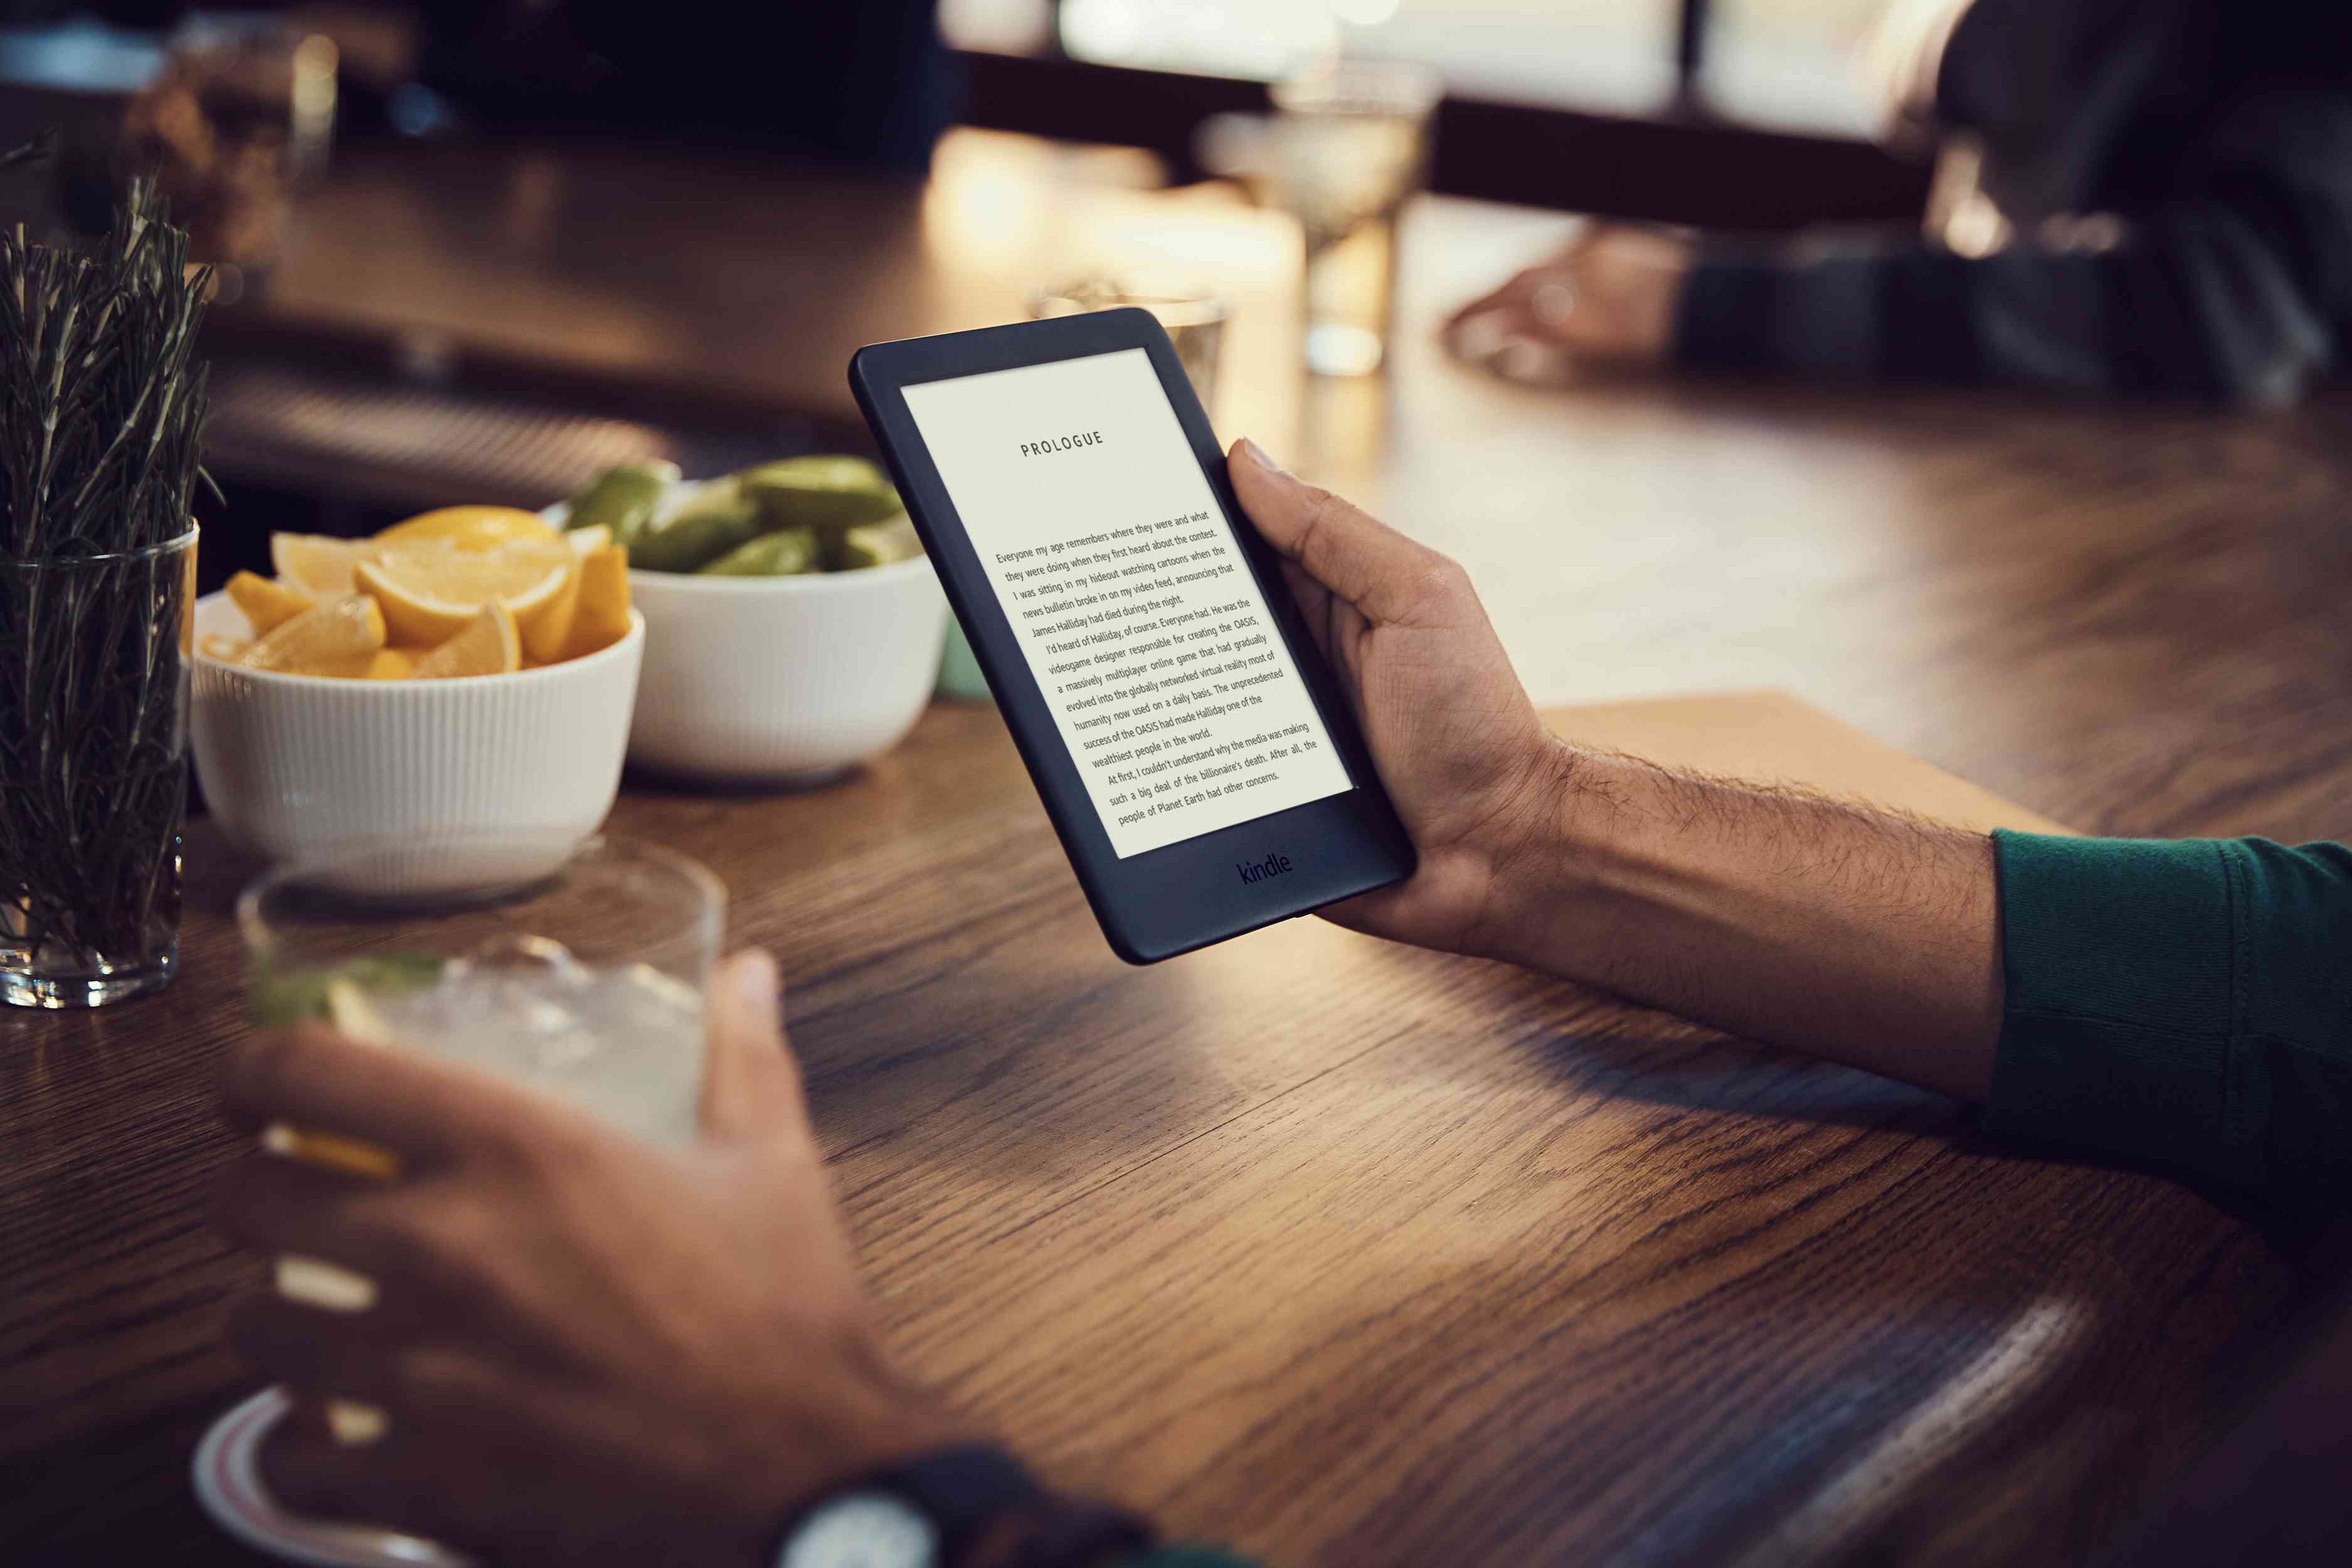 Someone reading an e-book on a Kindle device at the bar in a café.